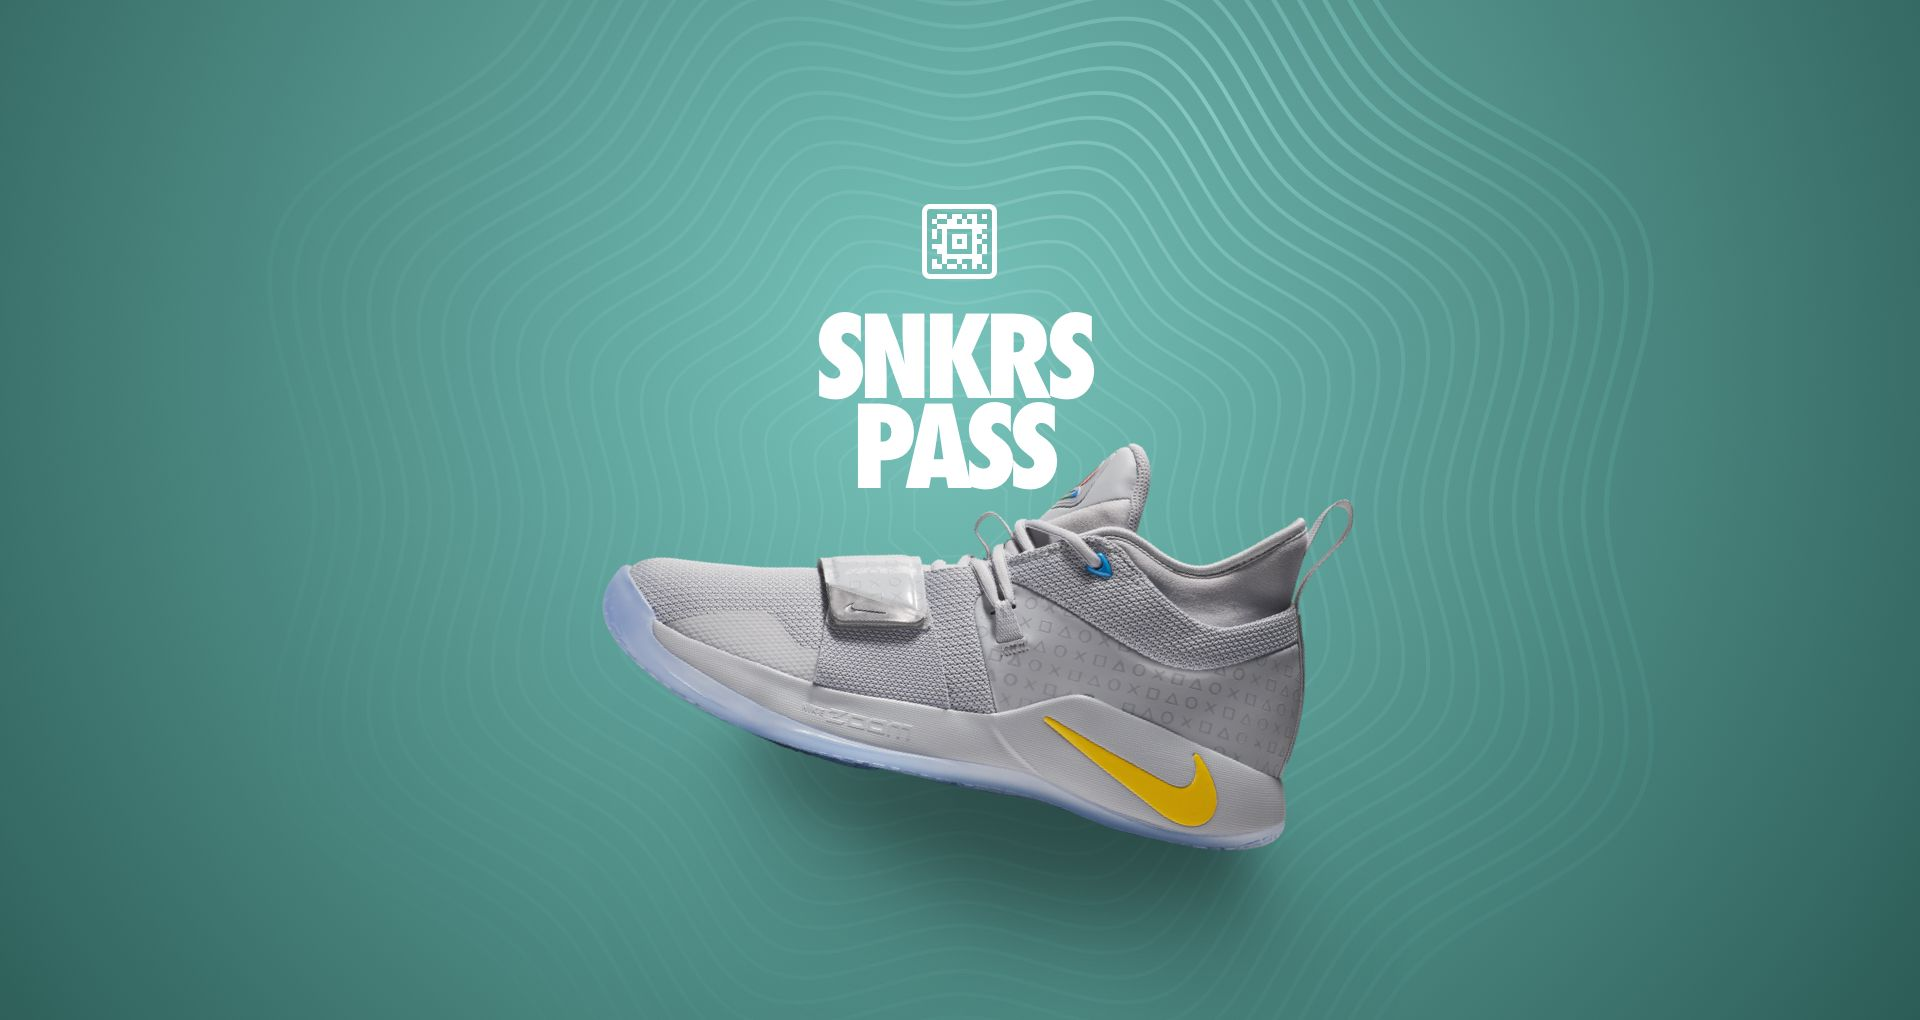 Nike PG 2 5 Playstation 'Wolf Grey' SNKRS Pass NYC  Nike+ SNKRS